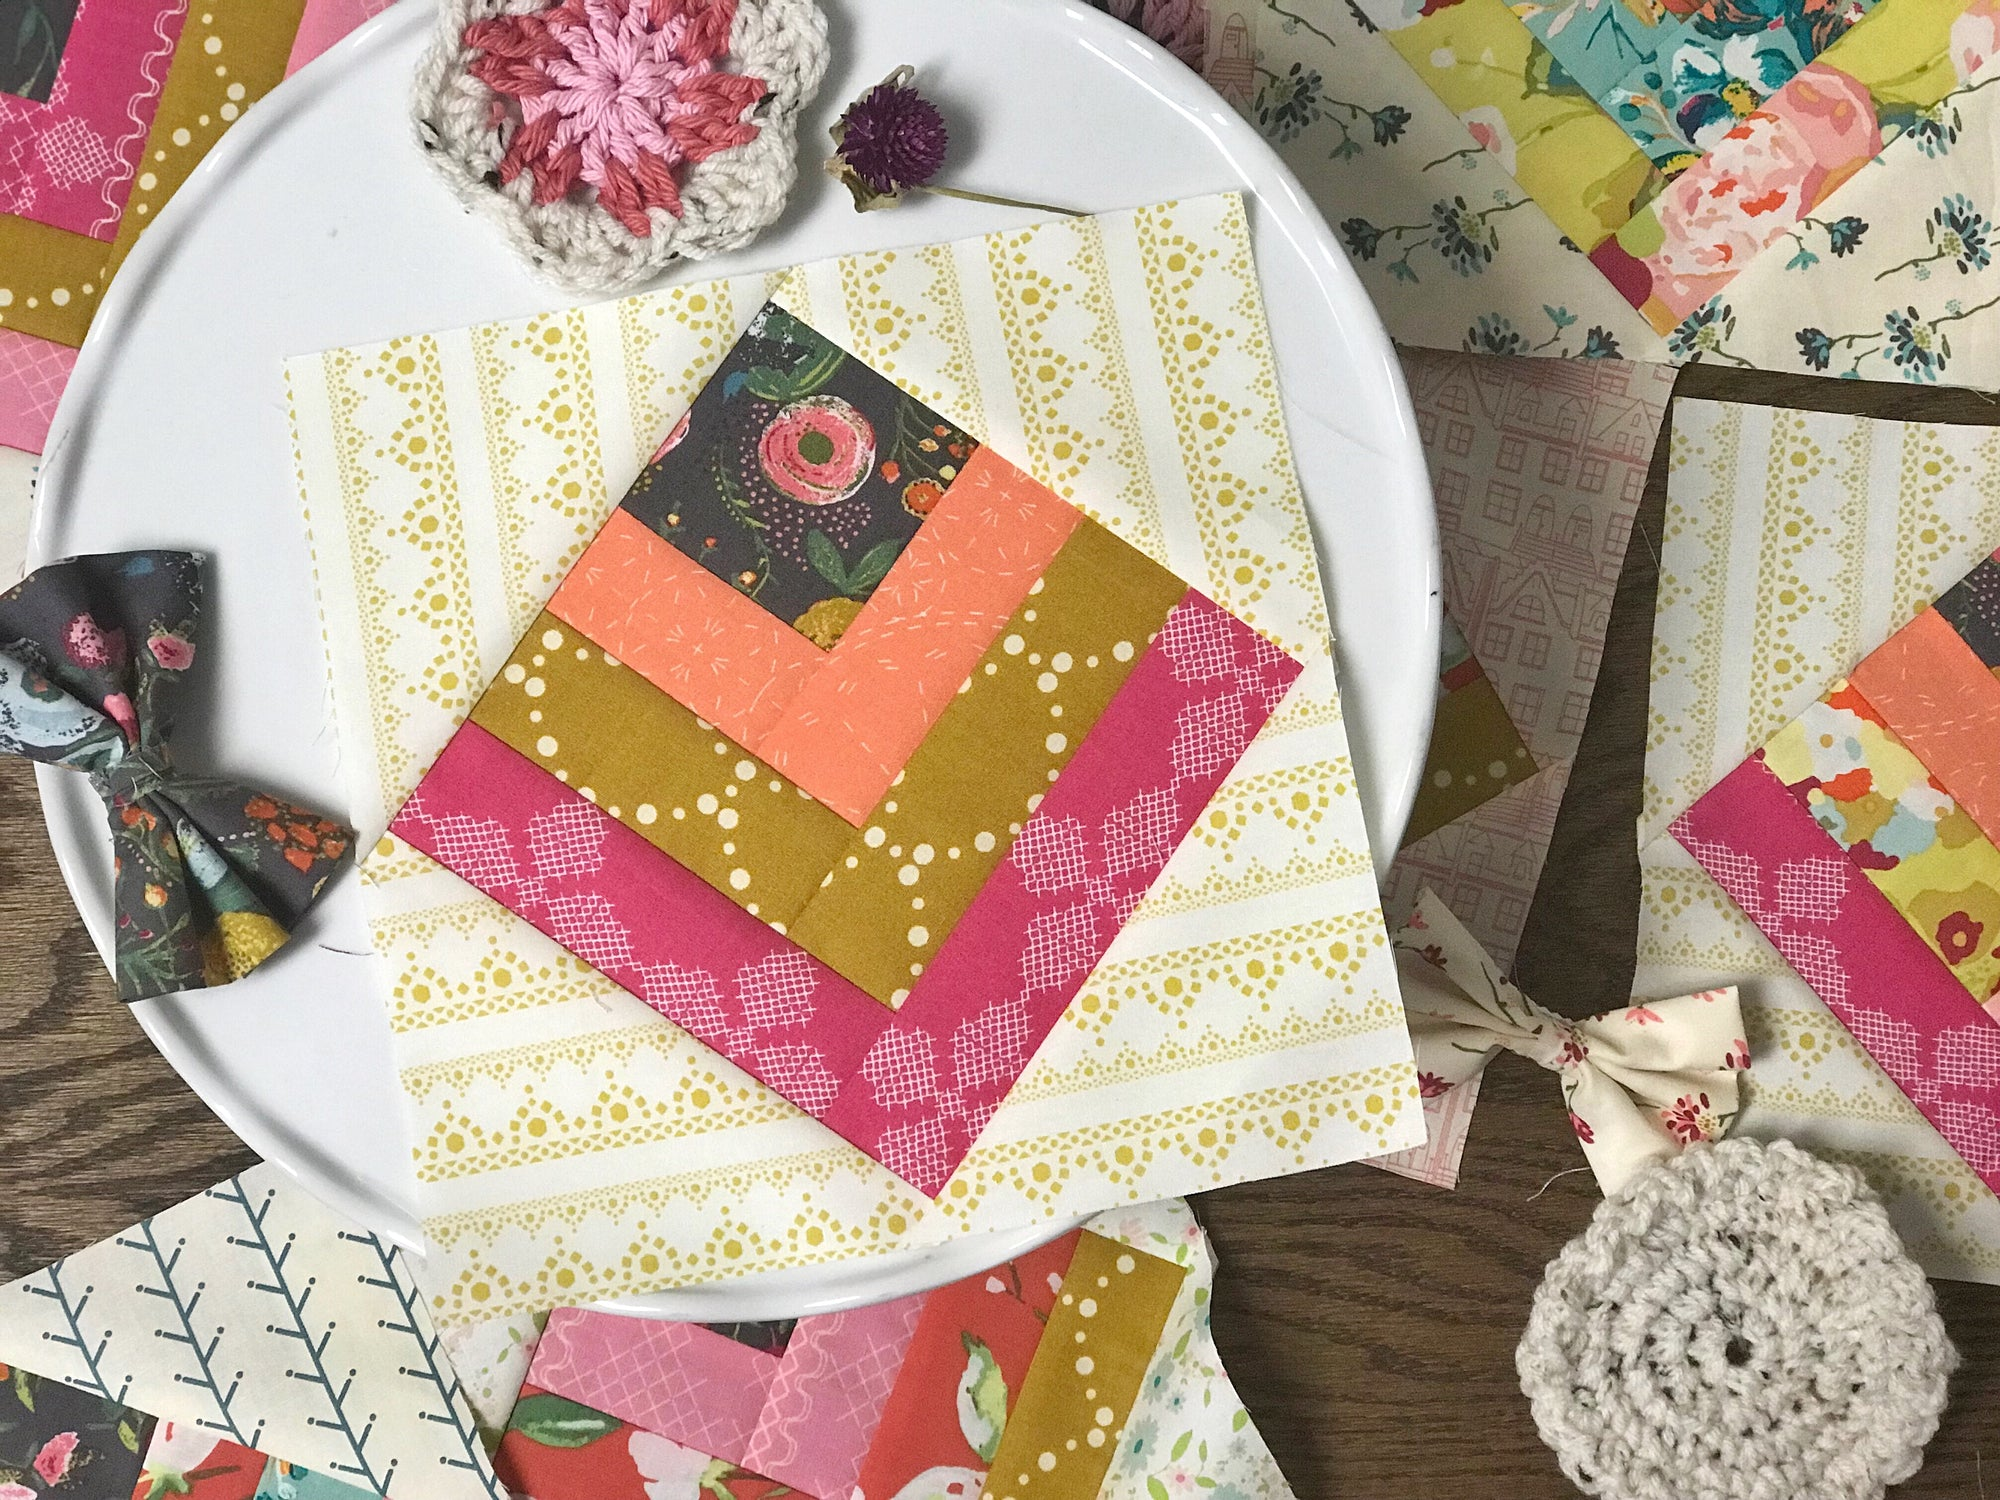 Anthologie - a boho patchwork quilt - Pattern 5: Mod Tulips